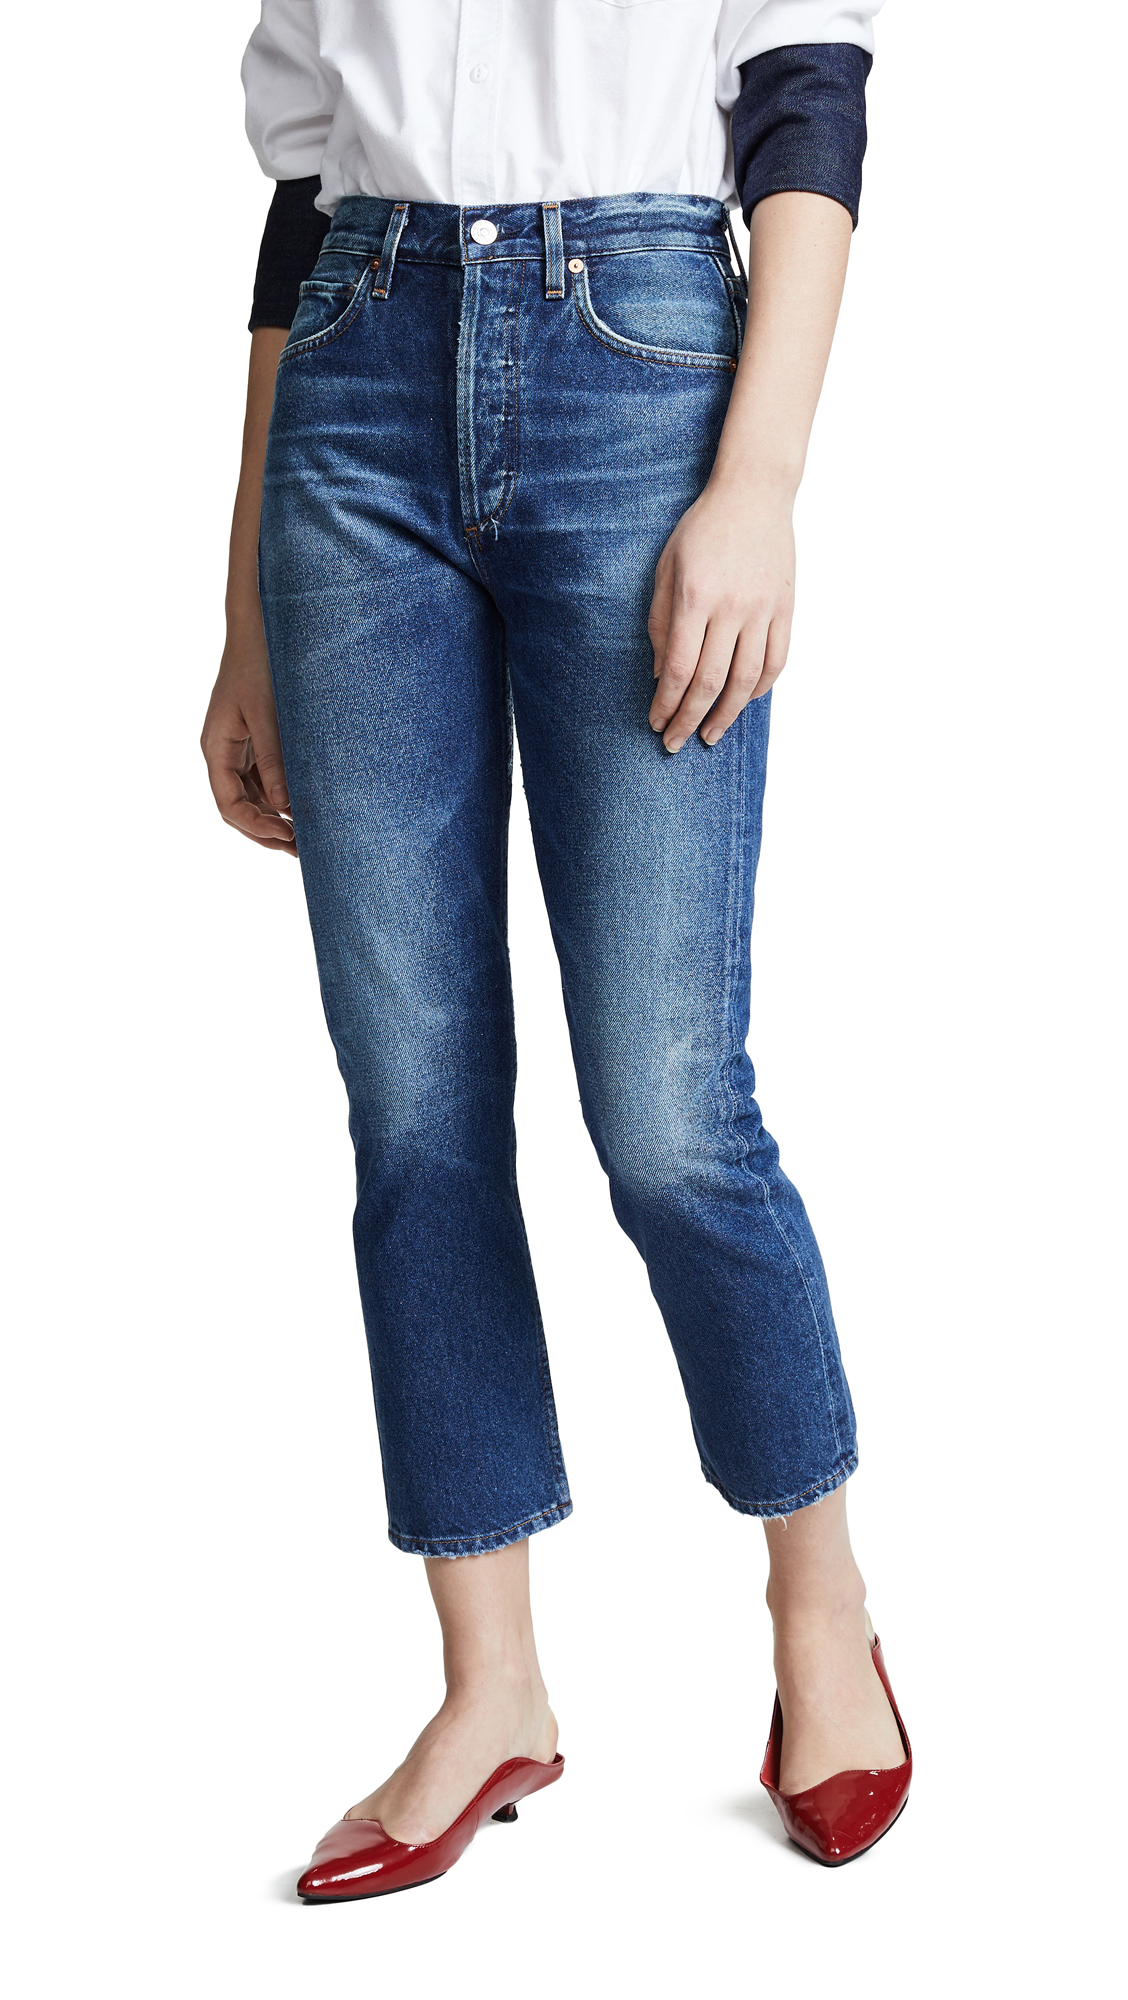 Citizens of Humanity Charlotte Crop High Rise Straight Jeans - Wish